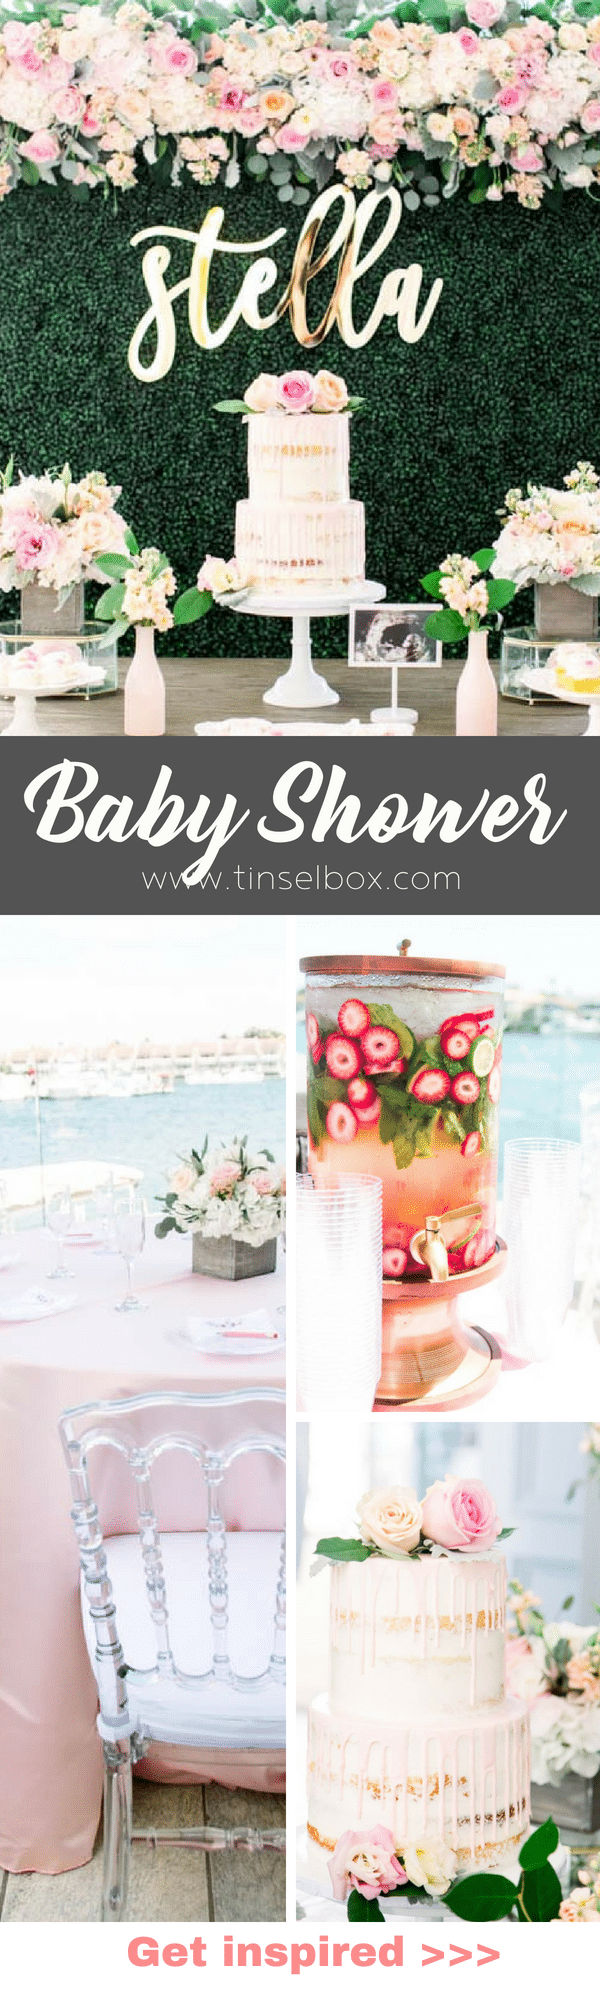 Moms-to-be everywhere will LOVE this gorgeous boho chic baby shower with shades of soft pinks, greens and pops of gold! #babyshower #bohochic